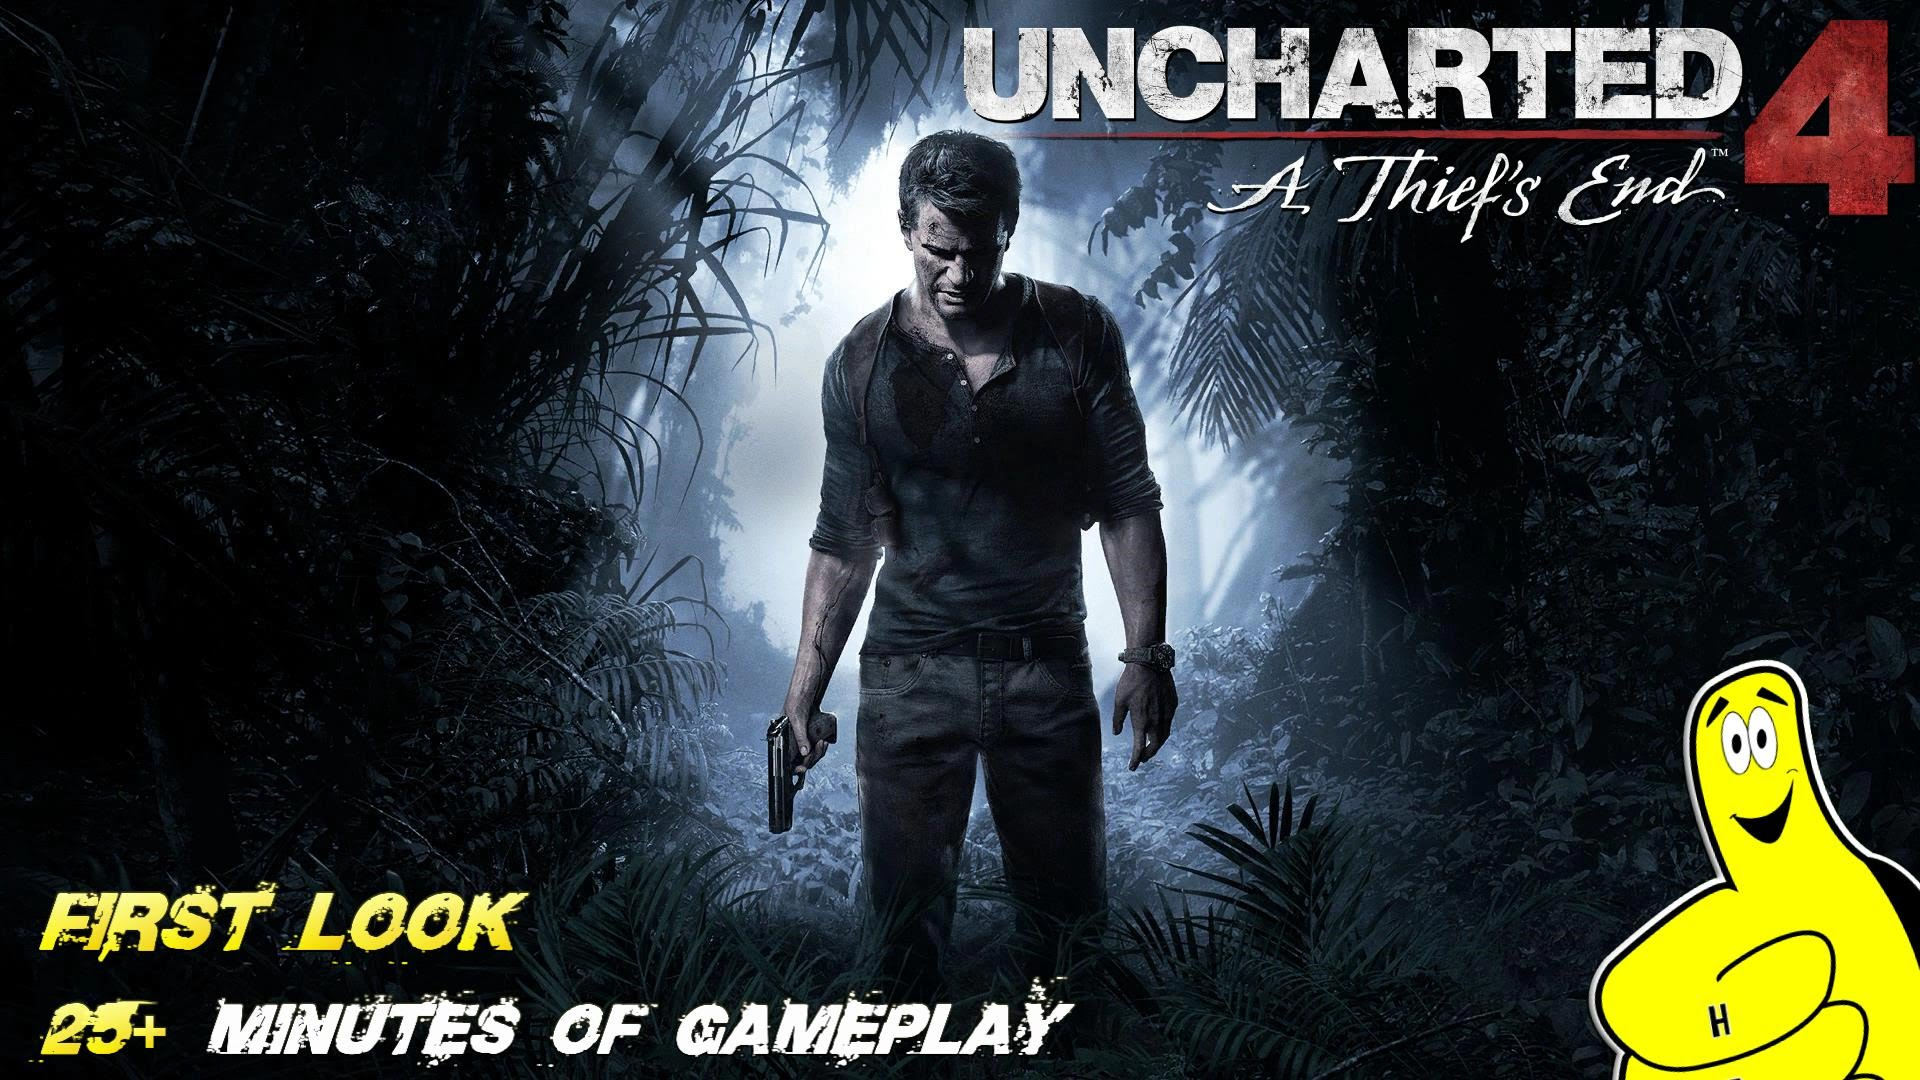 Uncharted 4: First Look 25+ Minutes of Uncharted 4 Gameplay (Prologue & Chap 1) – HTG